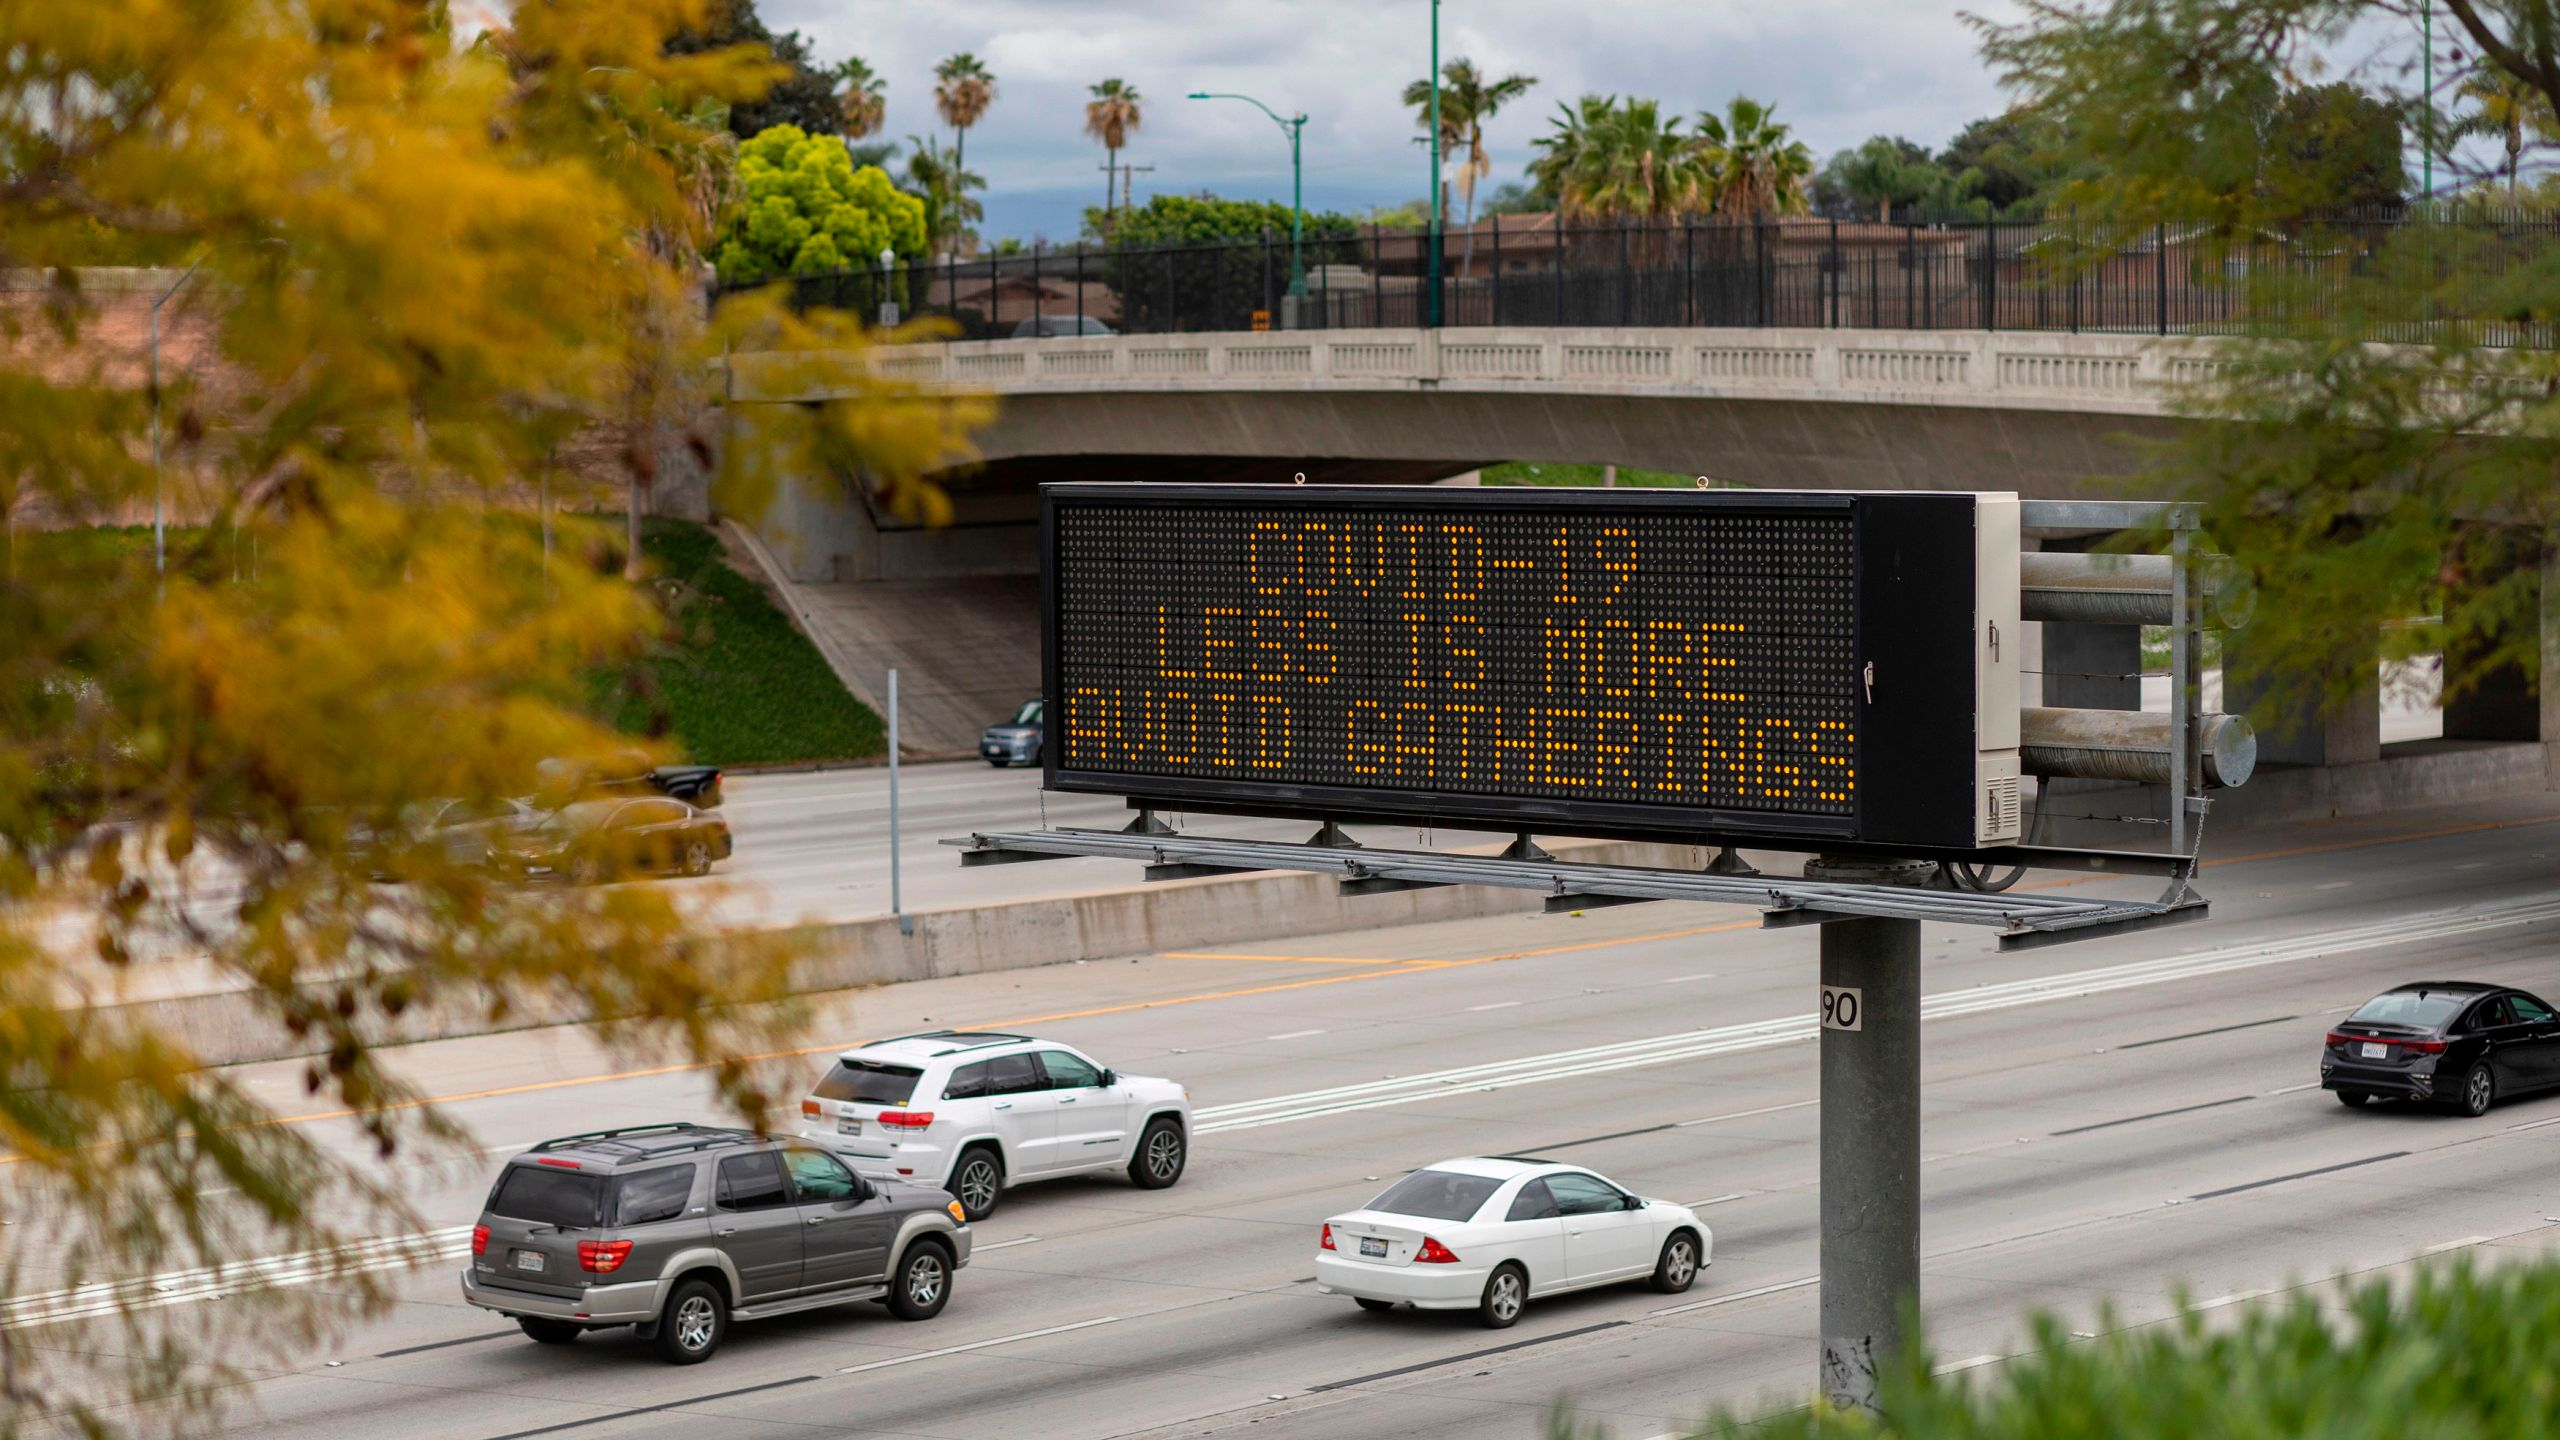 A Caltrans sign warns motorists on the 5 Freeway in Anaheim to not gather in crowds as the threat of coronavirus disease increases on March 14, 2020. (DAVID MCNEW/AFP via Getty Images)